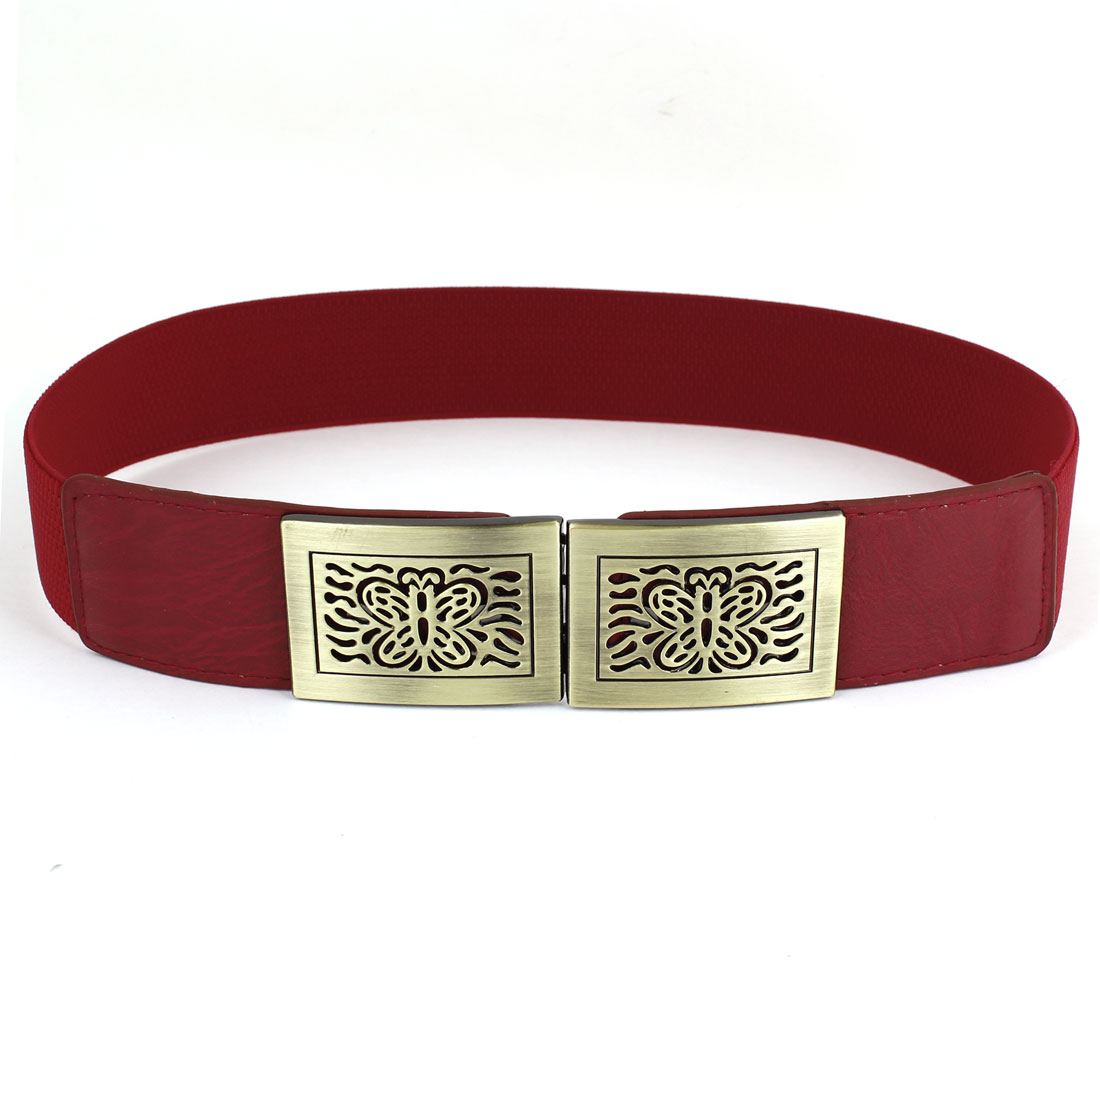 3.8cm Wide Bronze Tone Metal Interlock Buckle Red Waist Cinch Belt for Lady